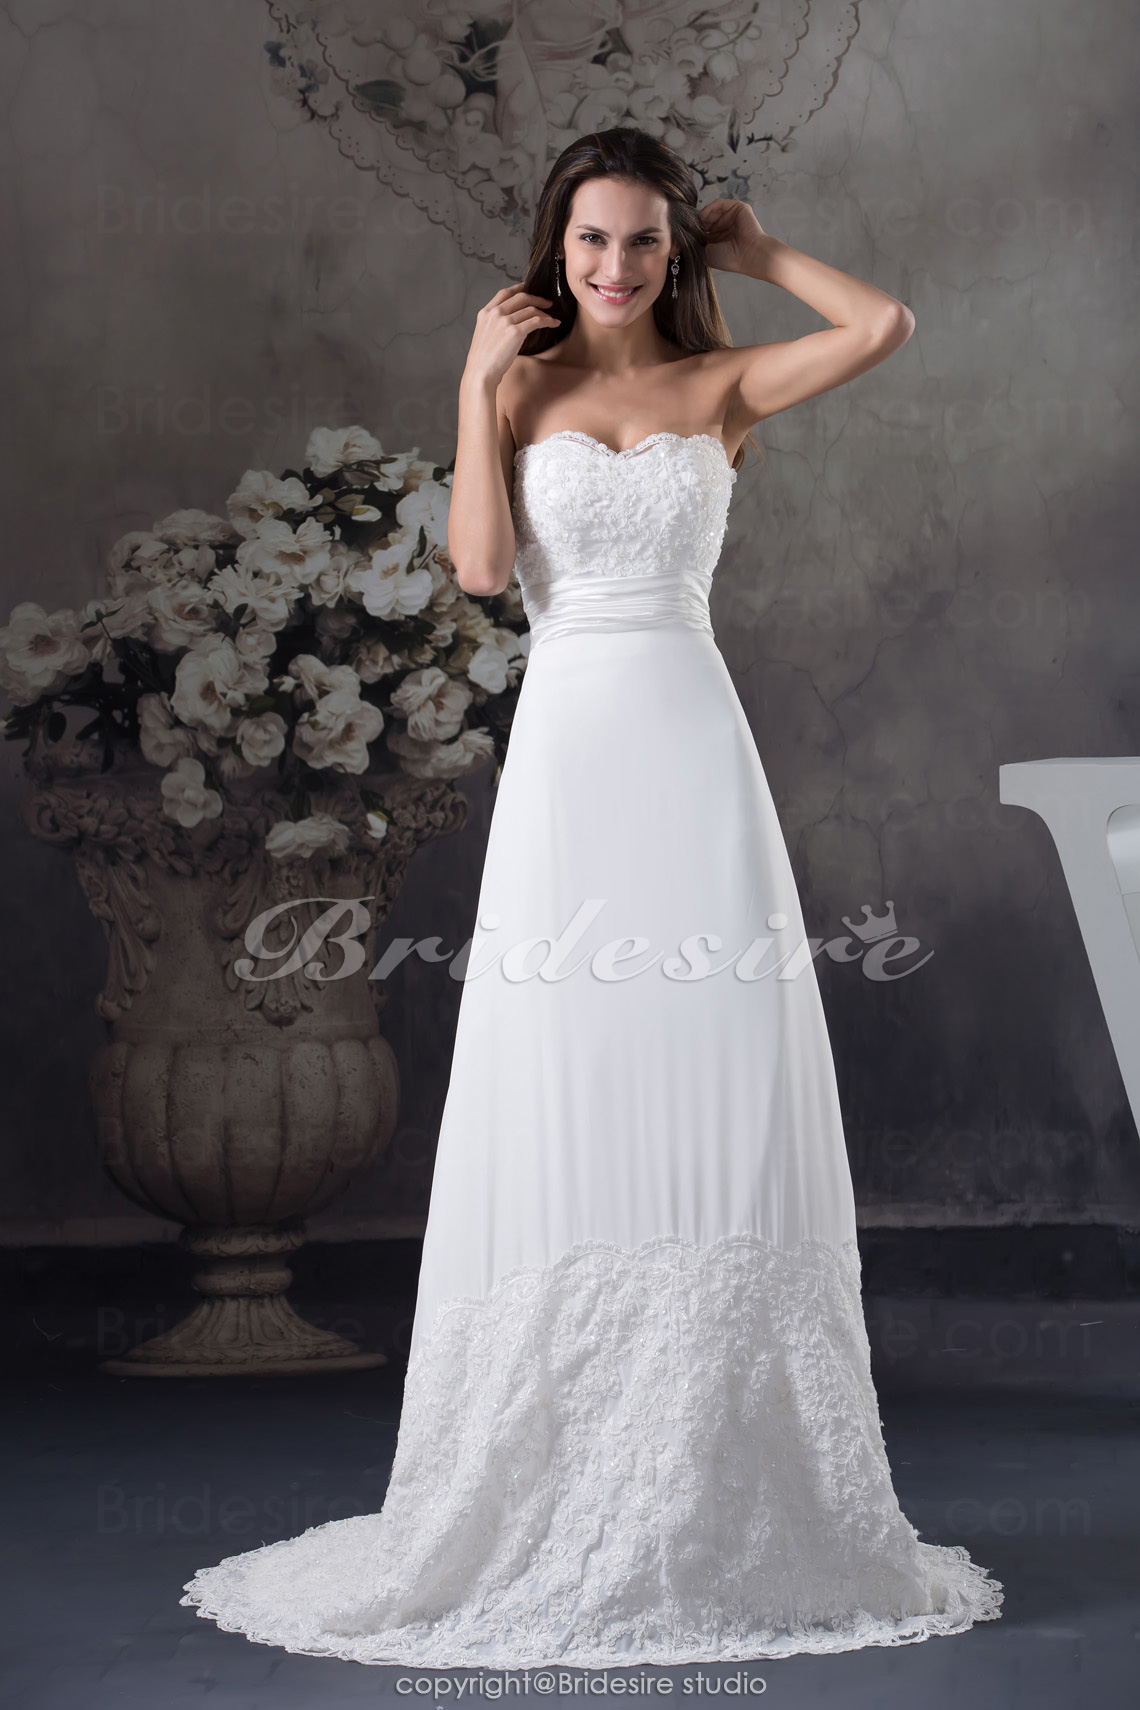 Sheath/Column Strapless Sweep Train Sleeveless Chiffon Lace Wedding Dress